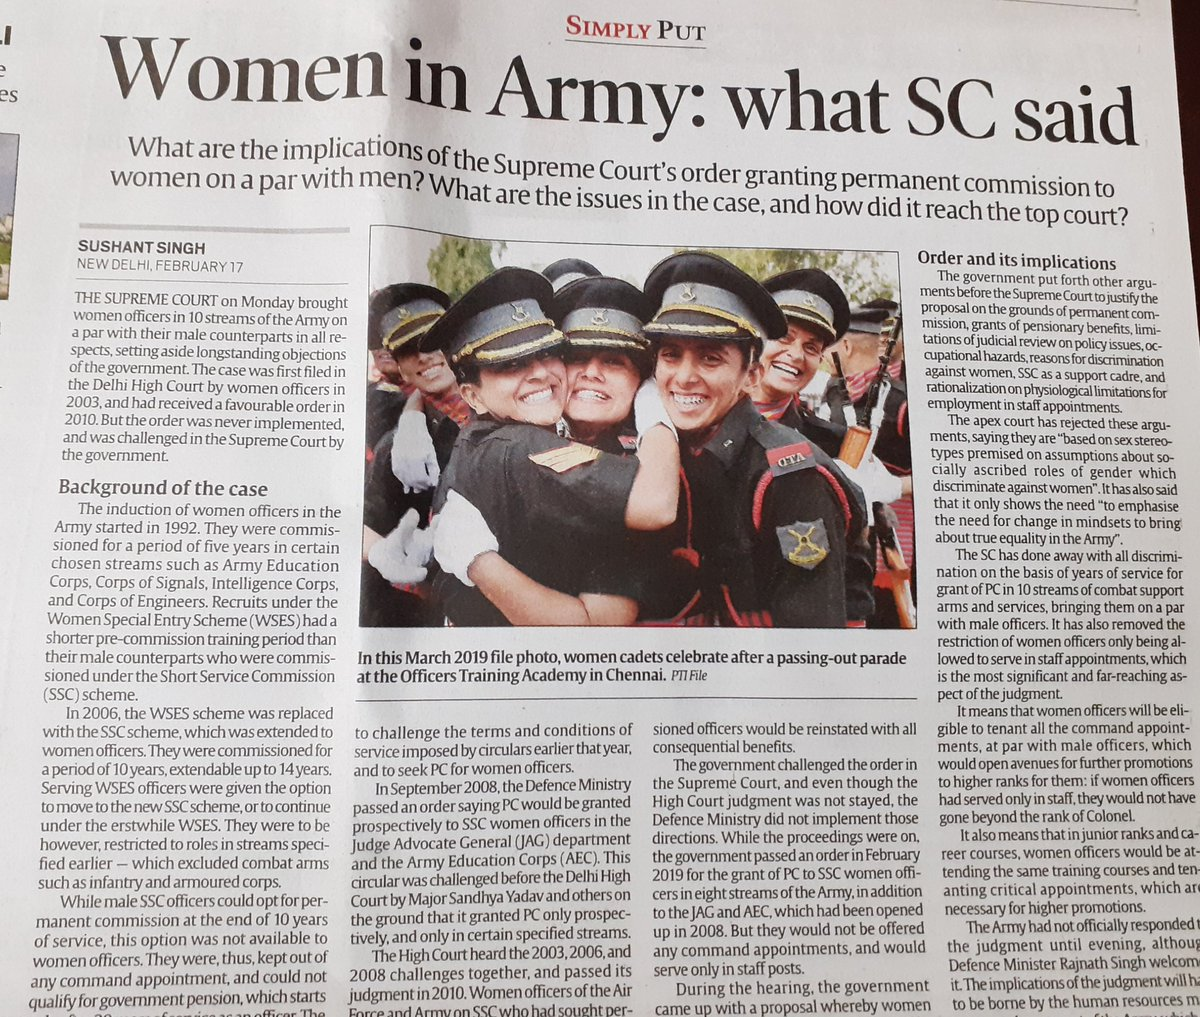 A proud moment for India as the The Supreme Court does away with years of discrimination against women in the fields of combat support and arms in the #IndianArmy. Bringing women at par with men. To #GenderEquality and building a Gender Equal India.@rajnathsingh